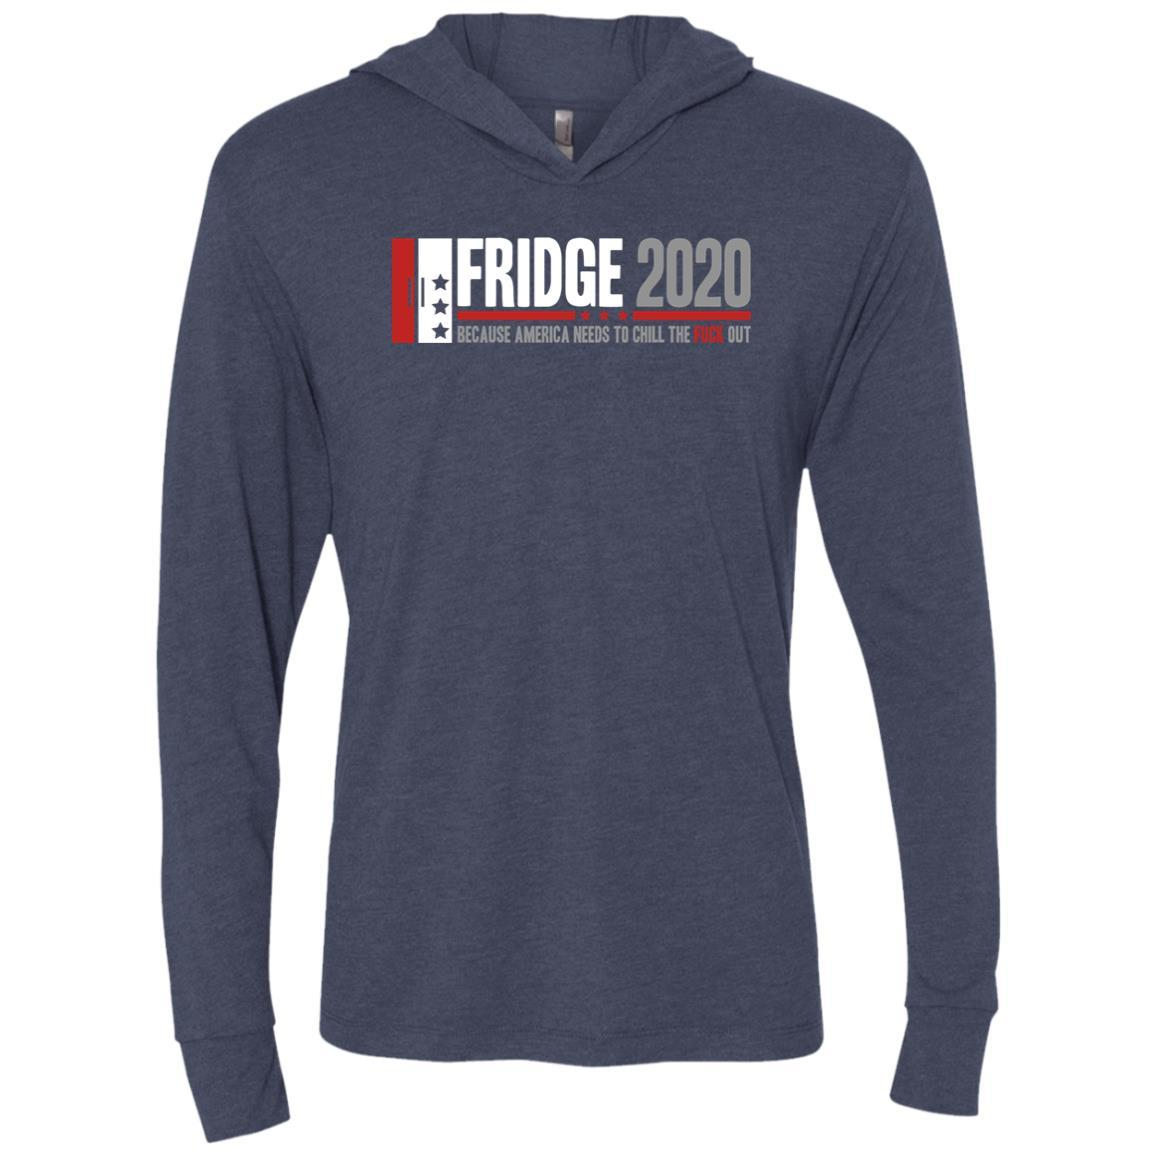 T-Shirts - Fridge 2020 Premium Light Hoodie